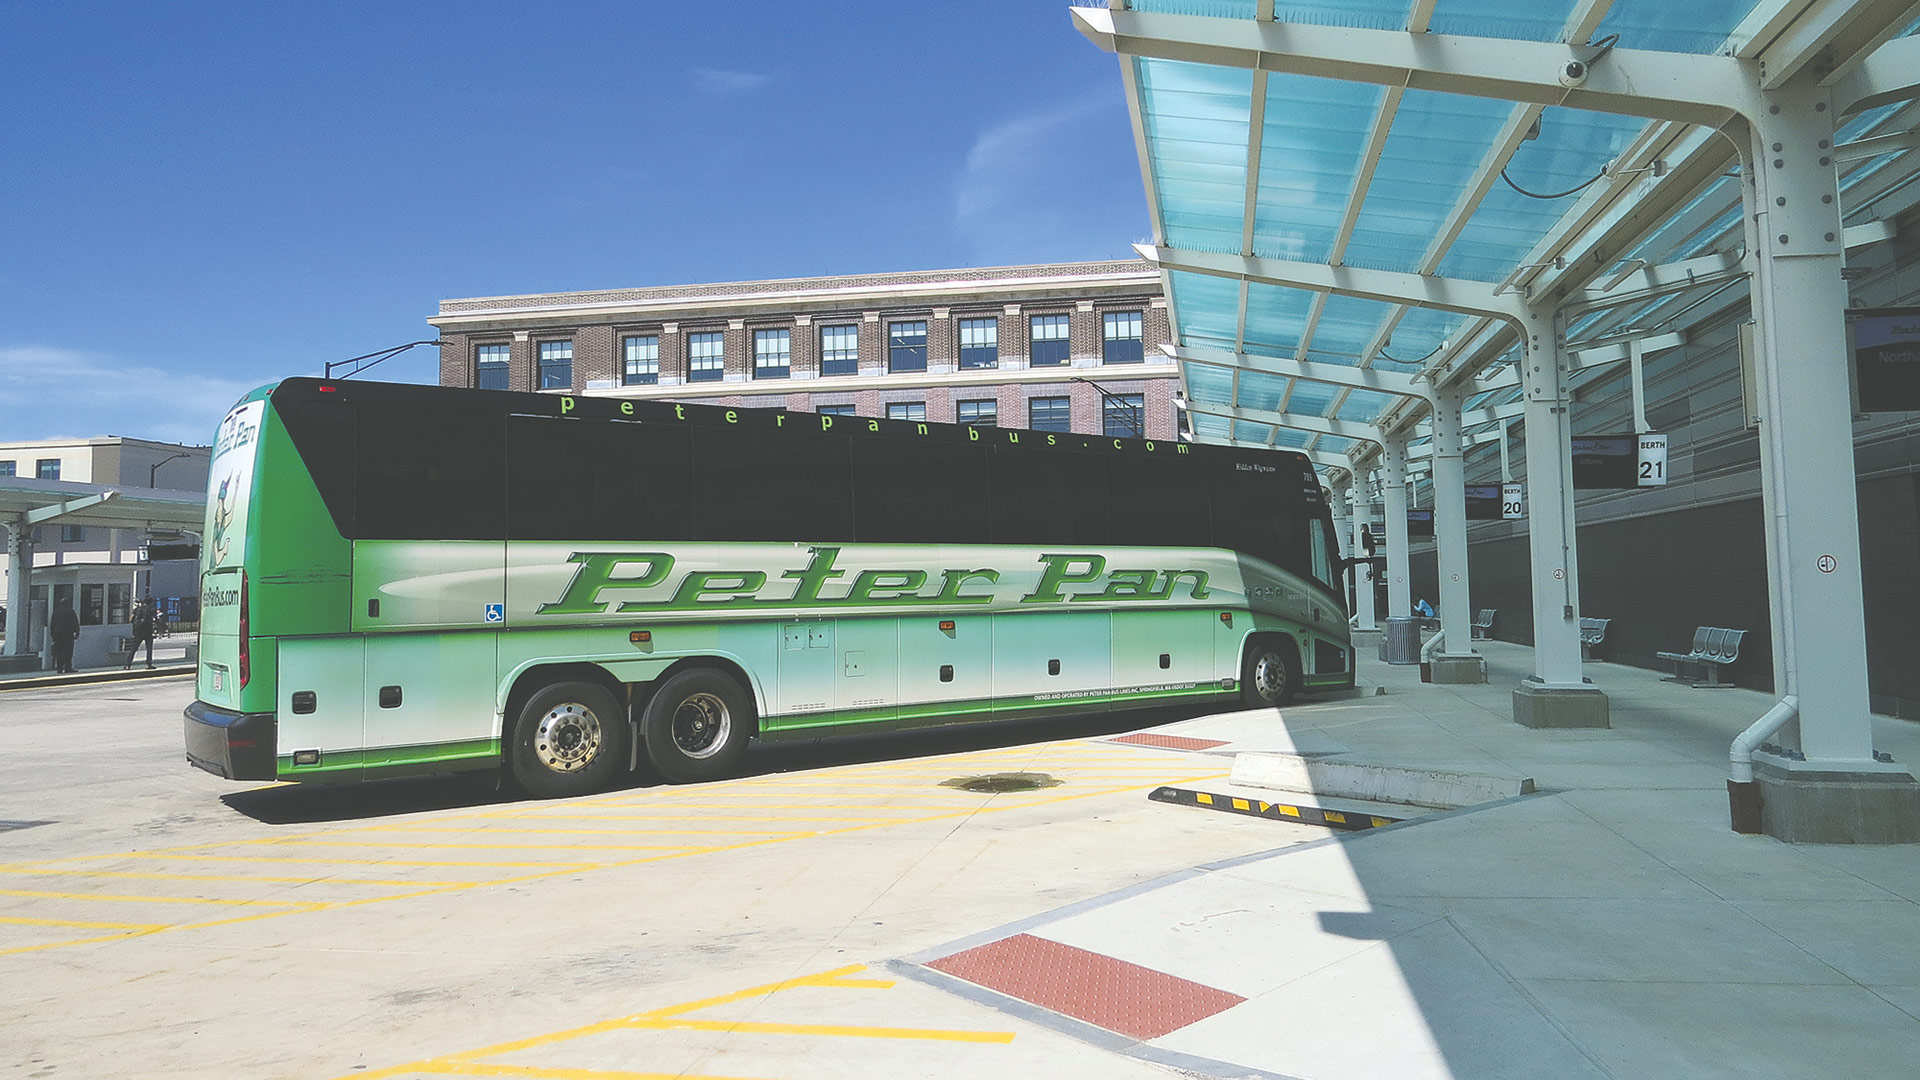 Peter Pan is currently in an expansion mode, adding new buses, drivers, and routes.